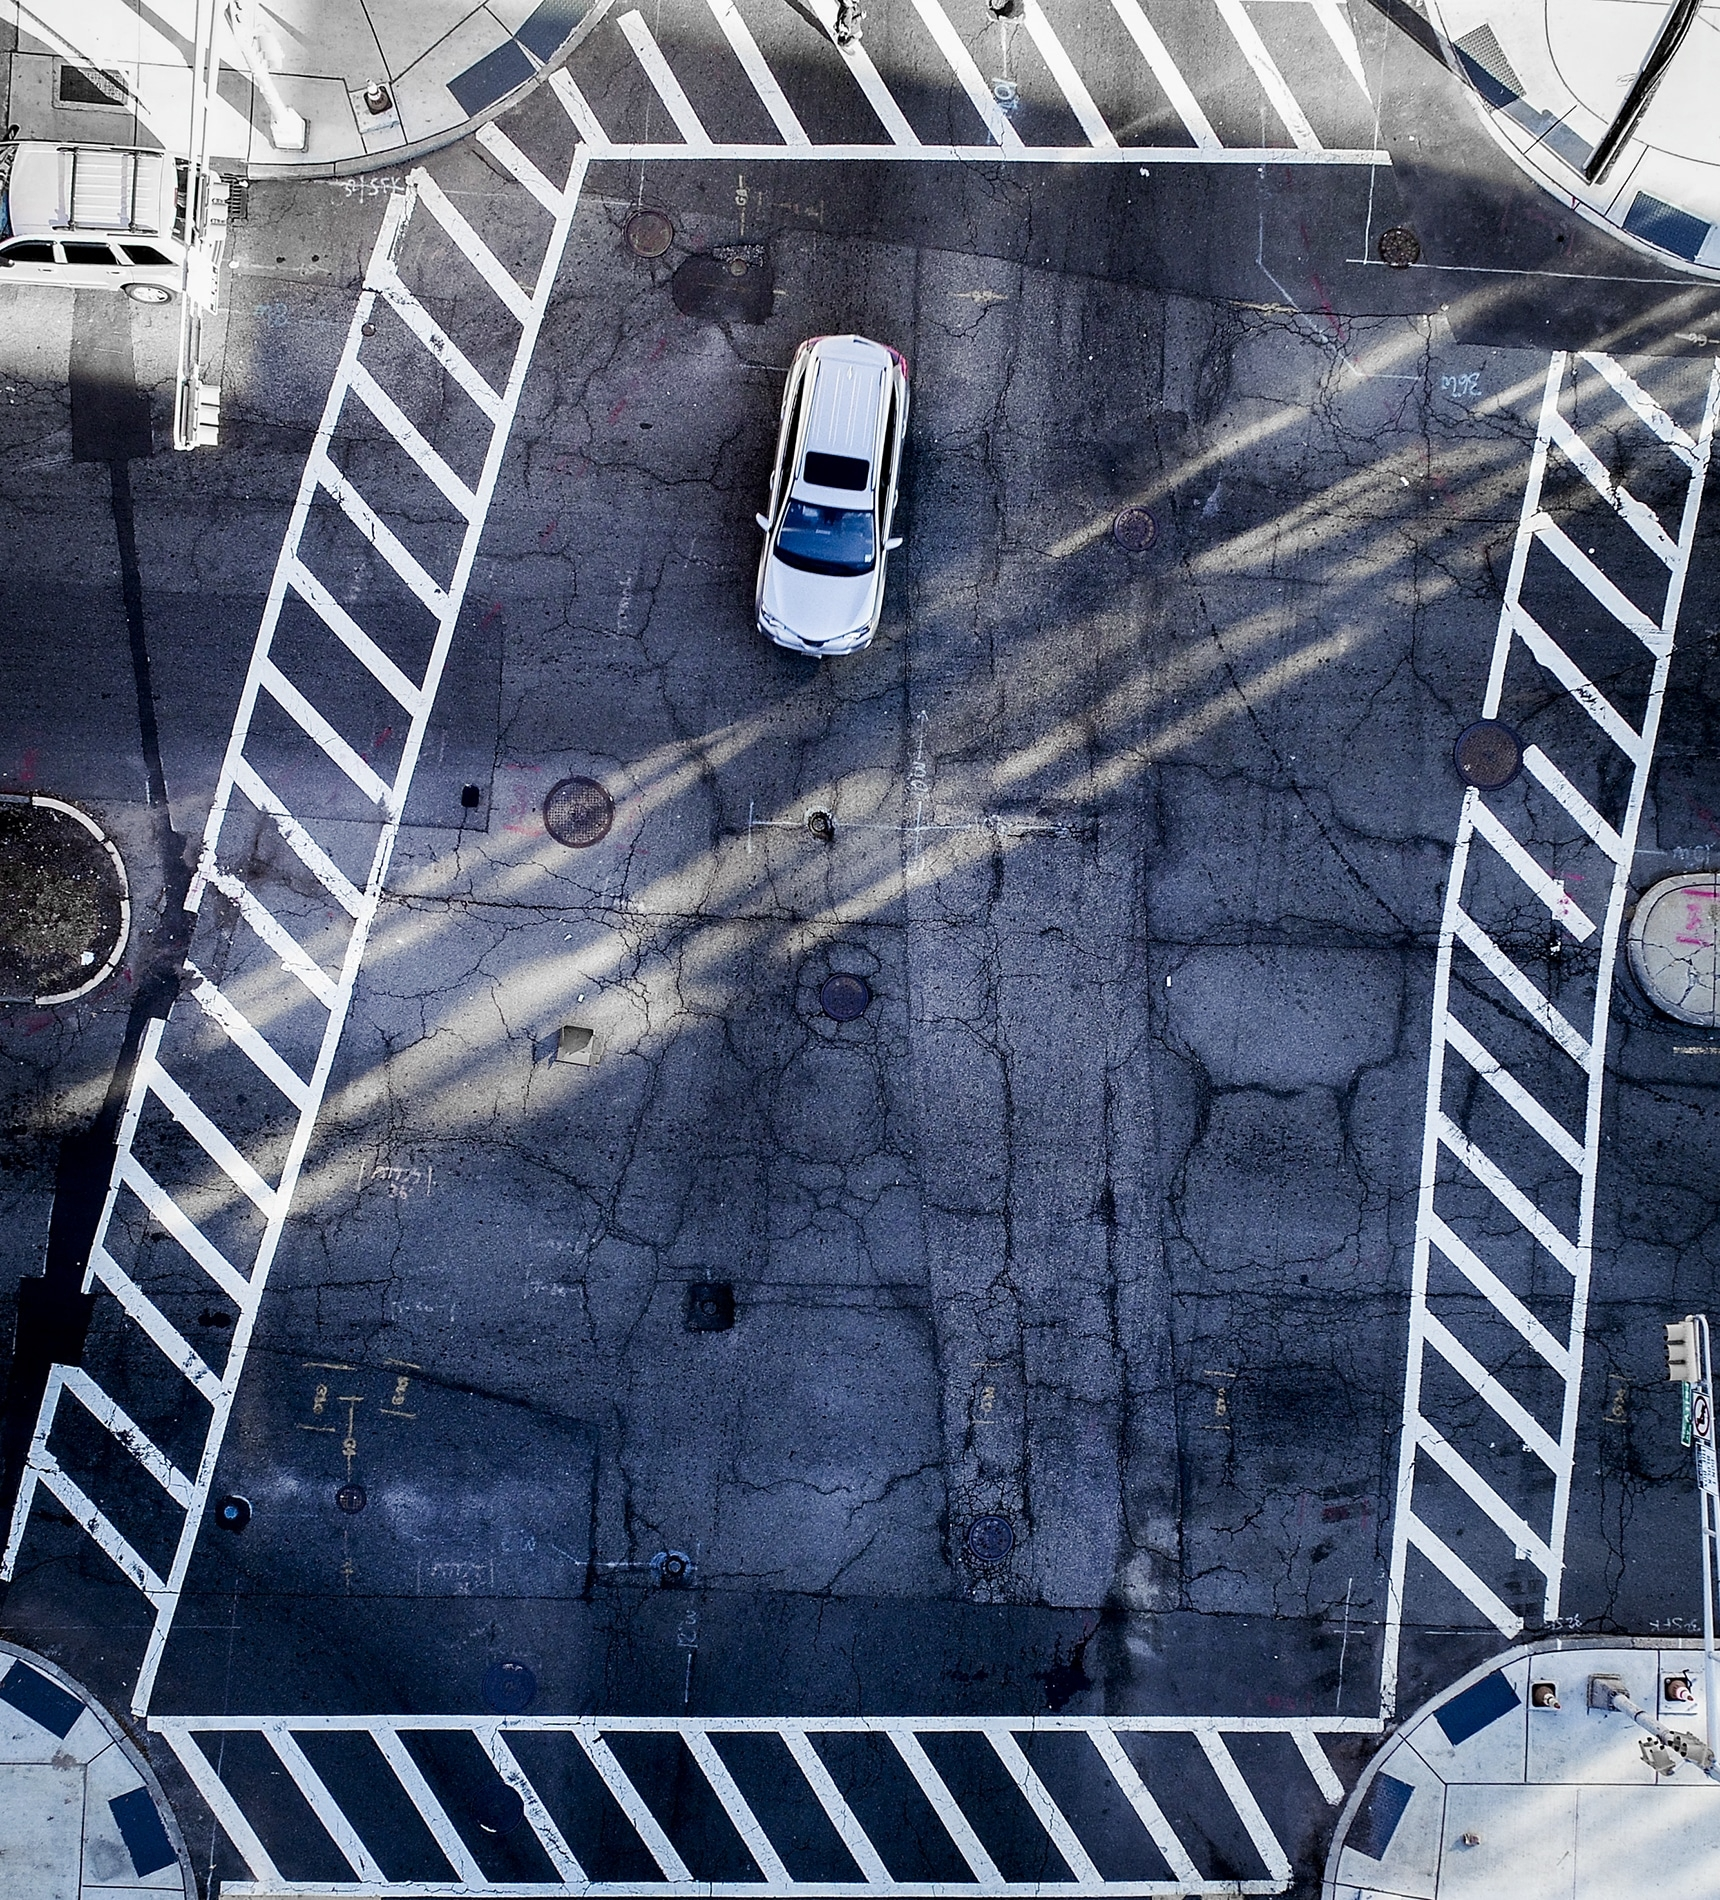 Drone Photograph taken of a car in an intersection in Newark New Jersey